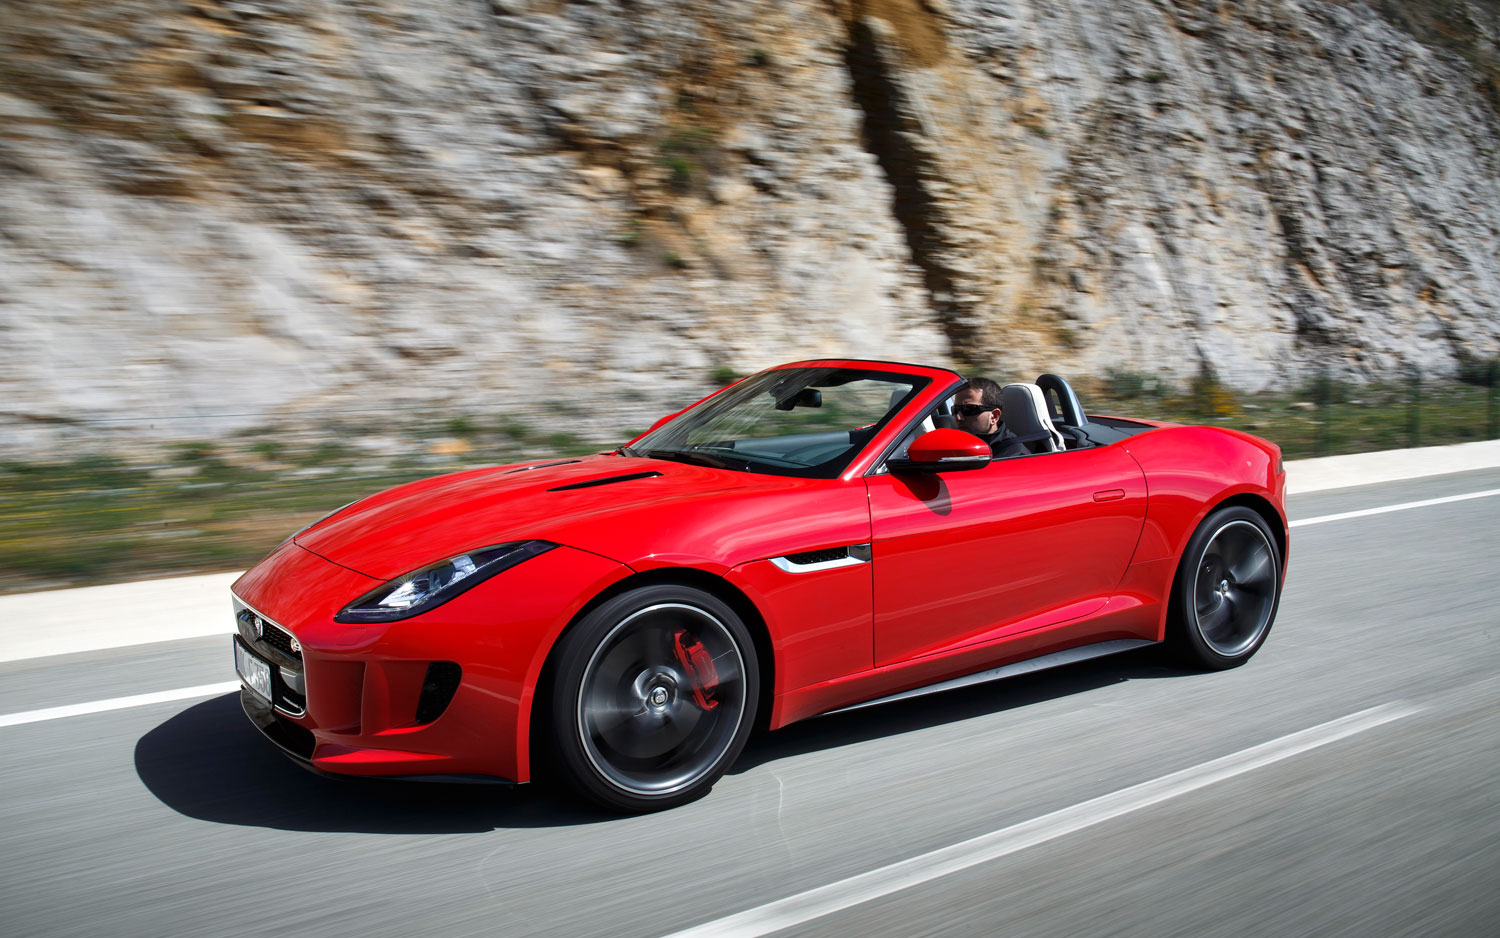 2014 jaguar f type first drive automobile magazine. Black Bedroom Furniture Sets. Home Design Ideas